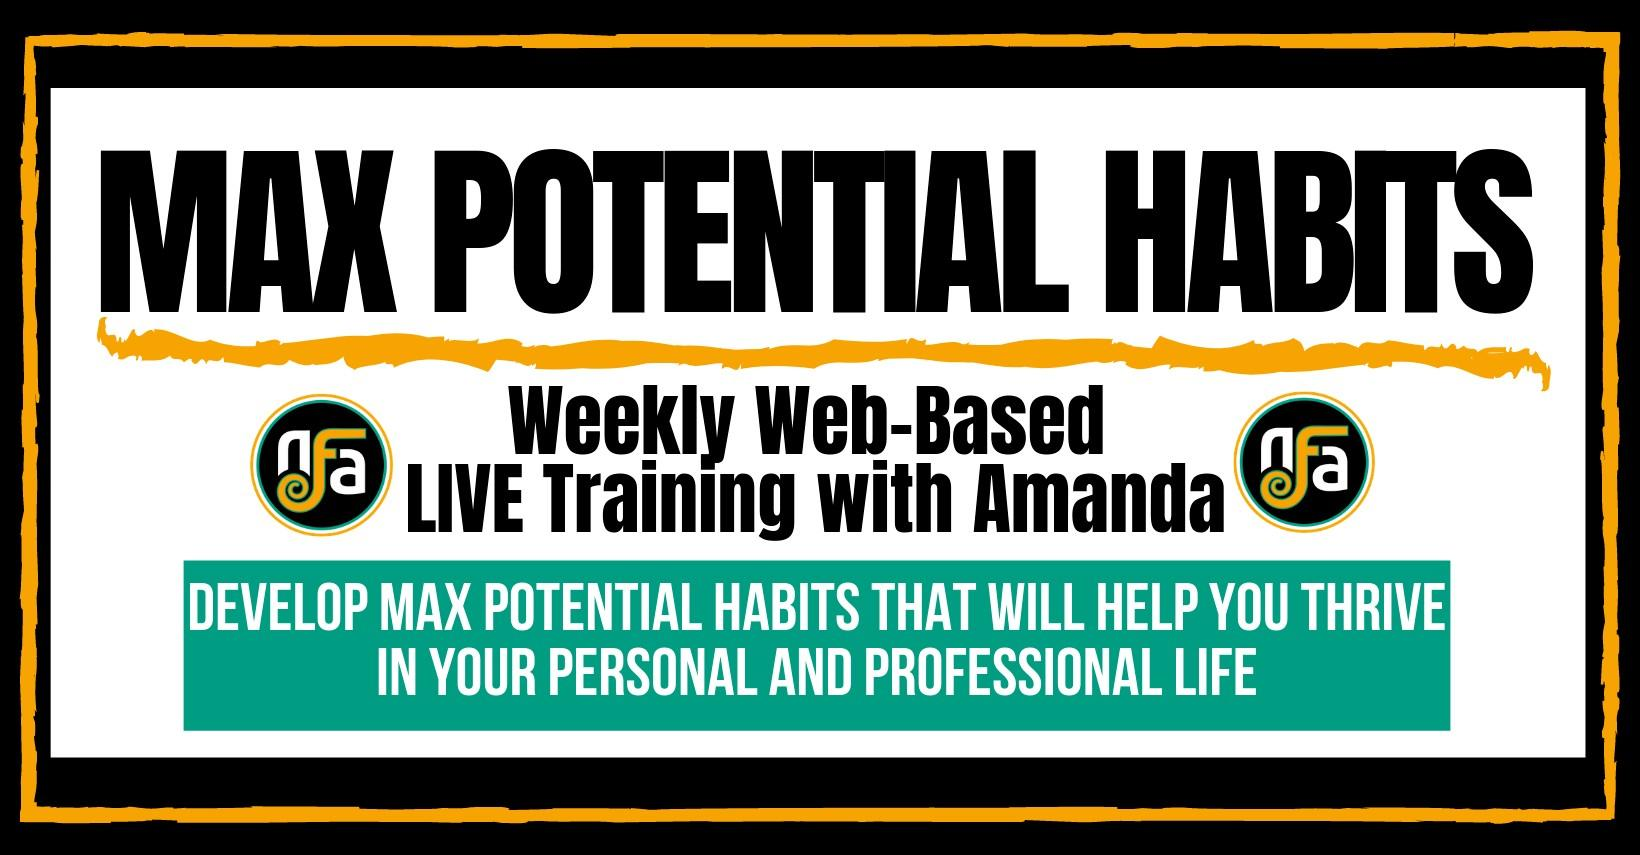 Max Potential Habits Weekly Live Training With Dr Amanda